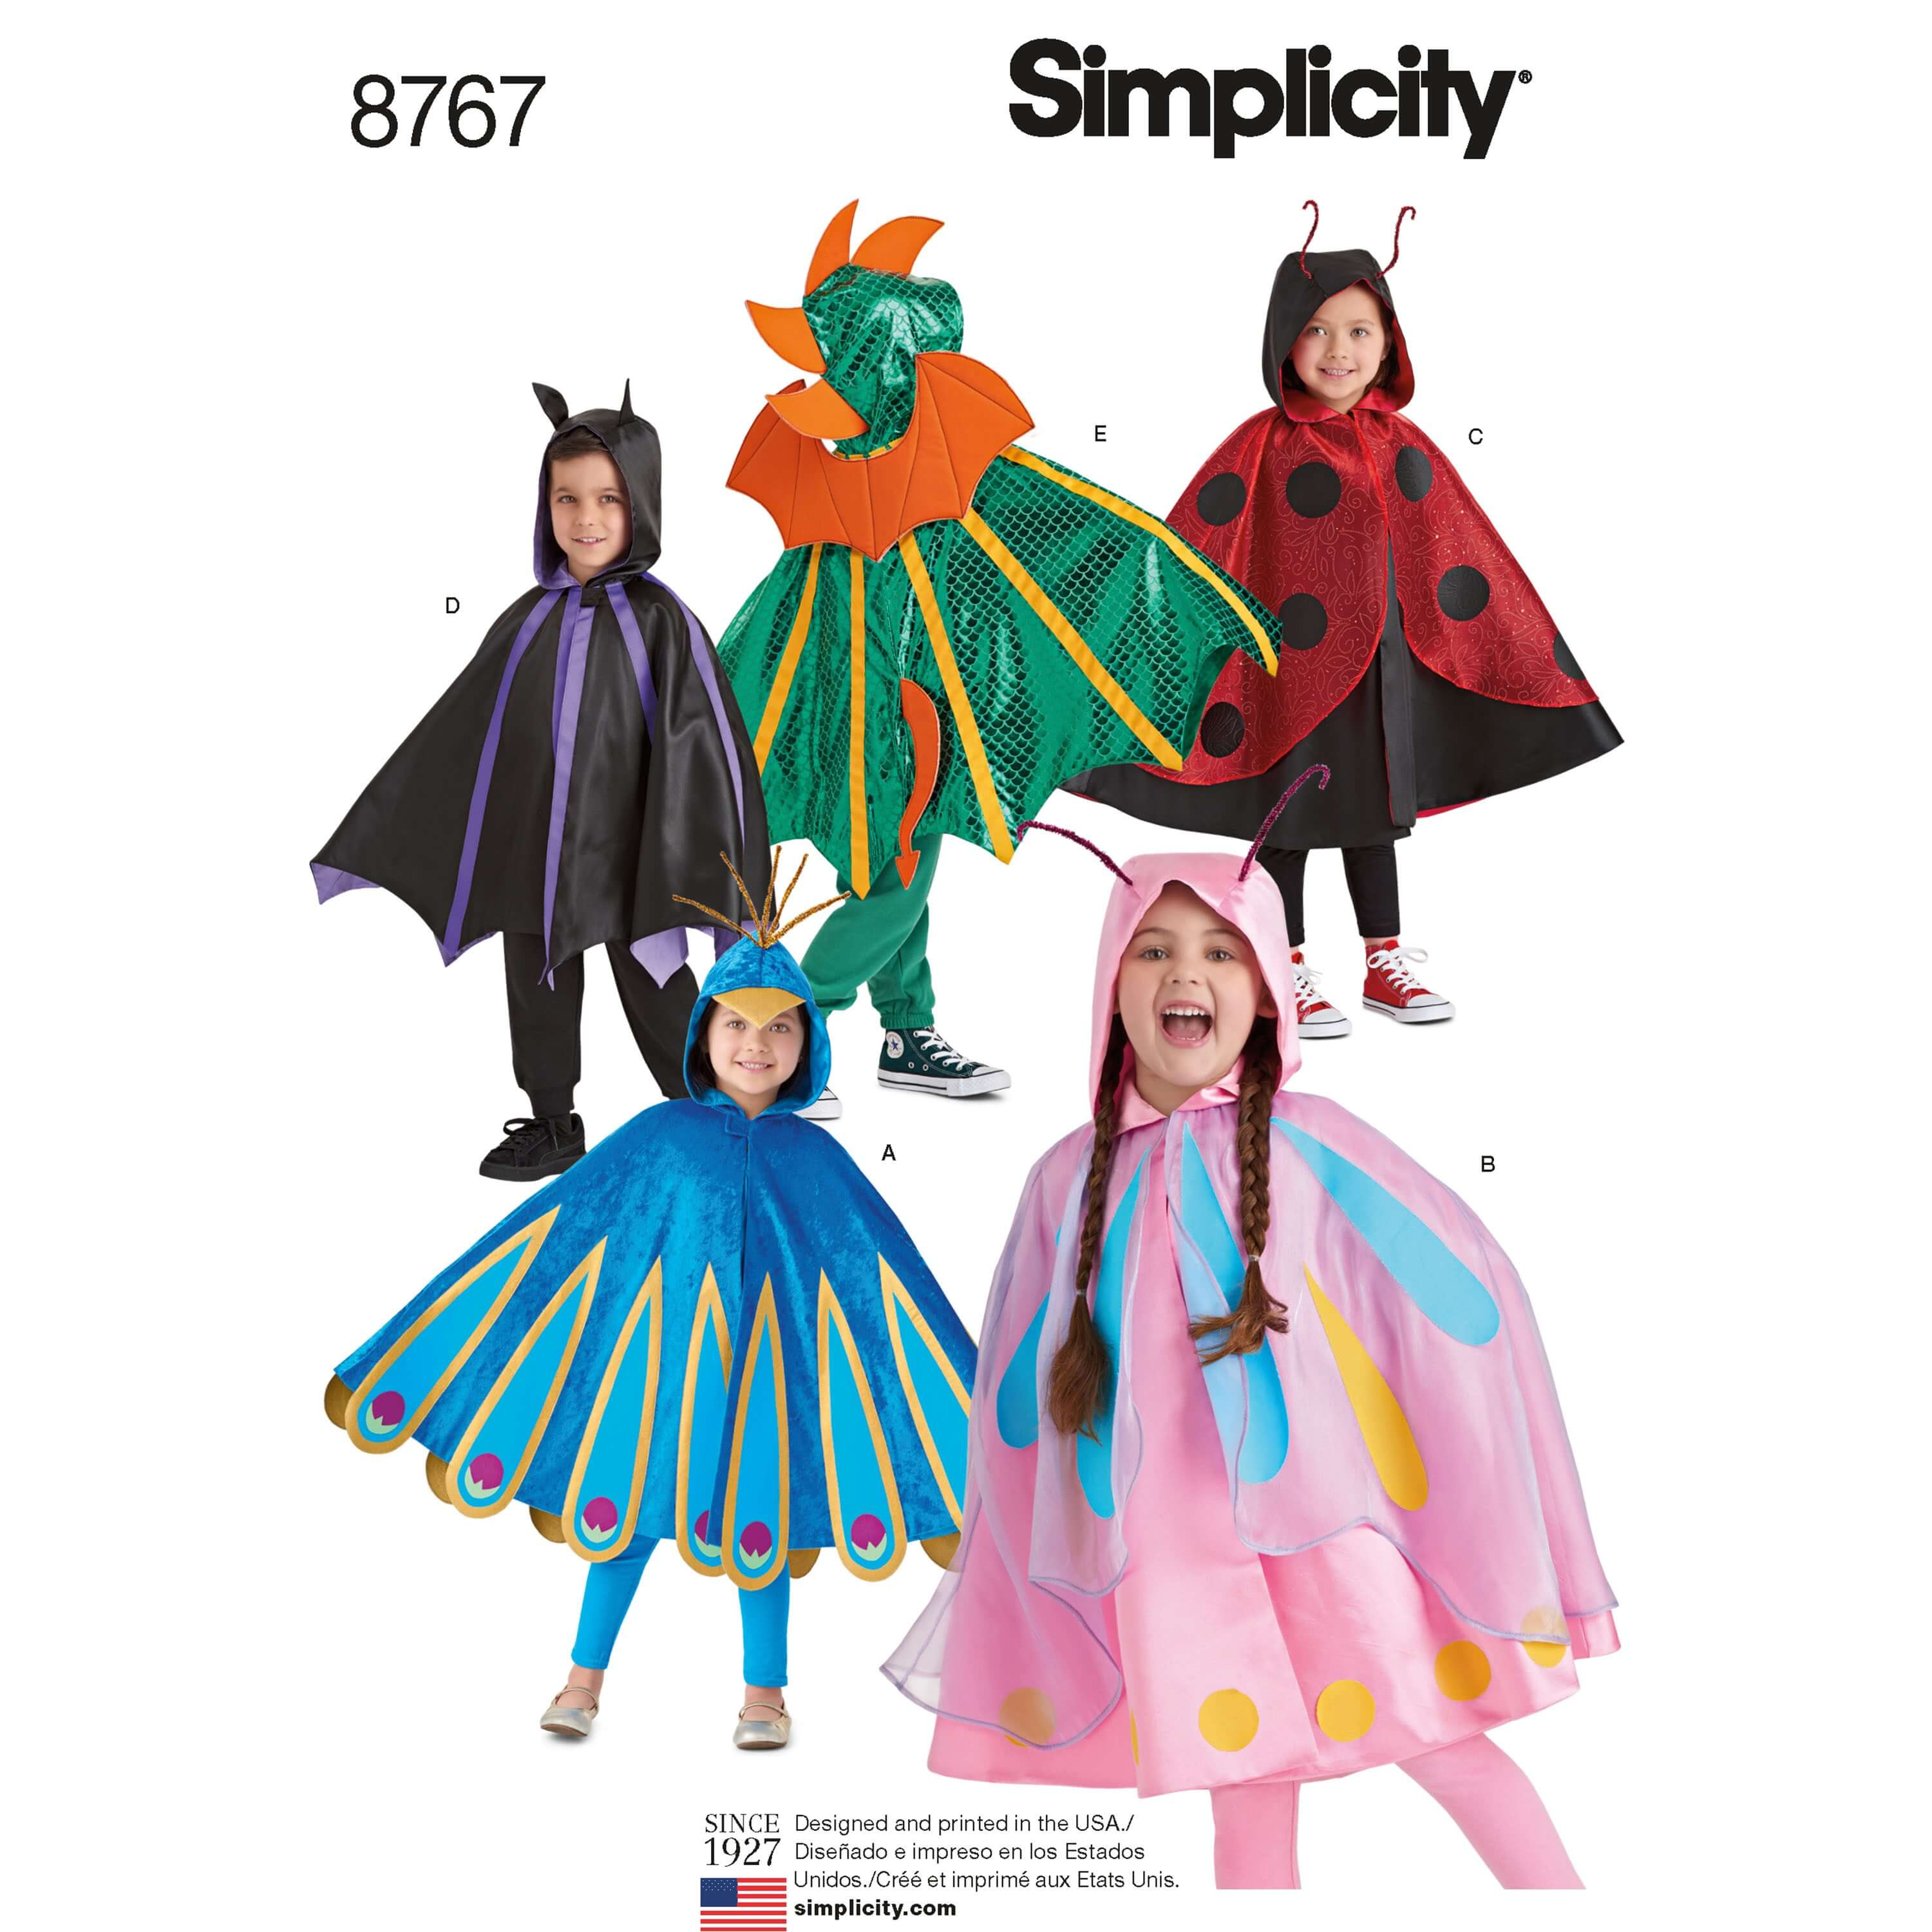 Simplicity Sewing Pattern 8767 Children's Costume Capes Fancy Dress